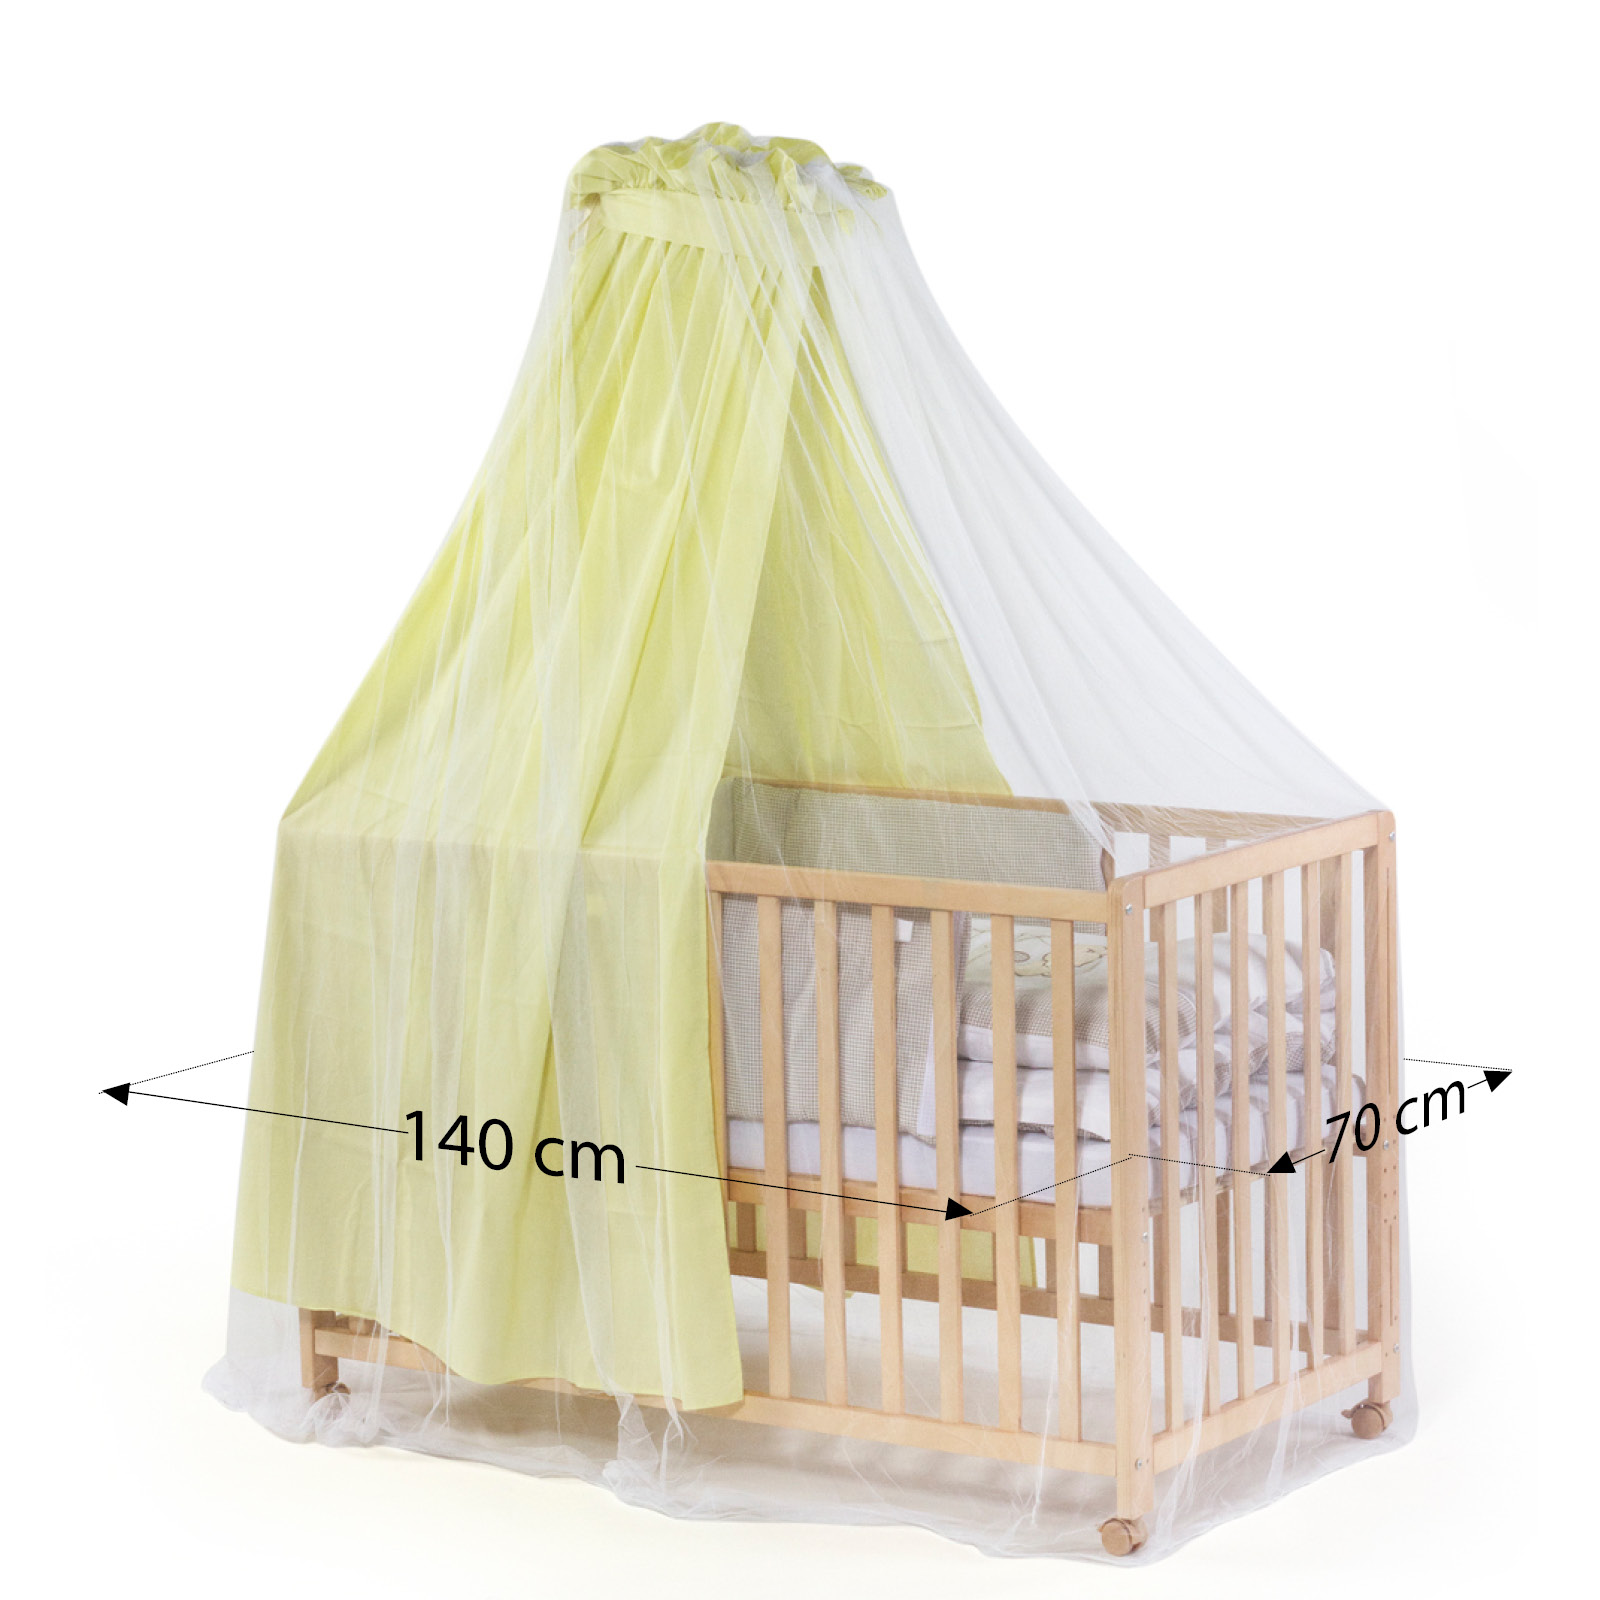 Mosquito Net Cot with Canopy  sc 1 st  DIAGO & DIAGO - Mosquito Net Cot with Canopy